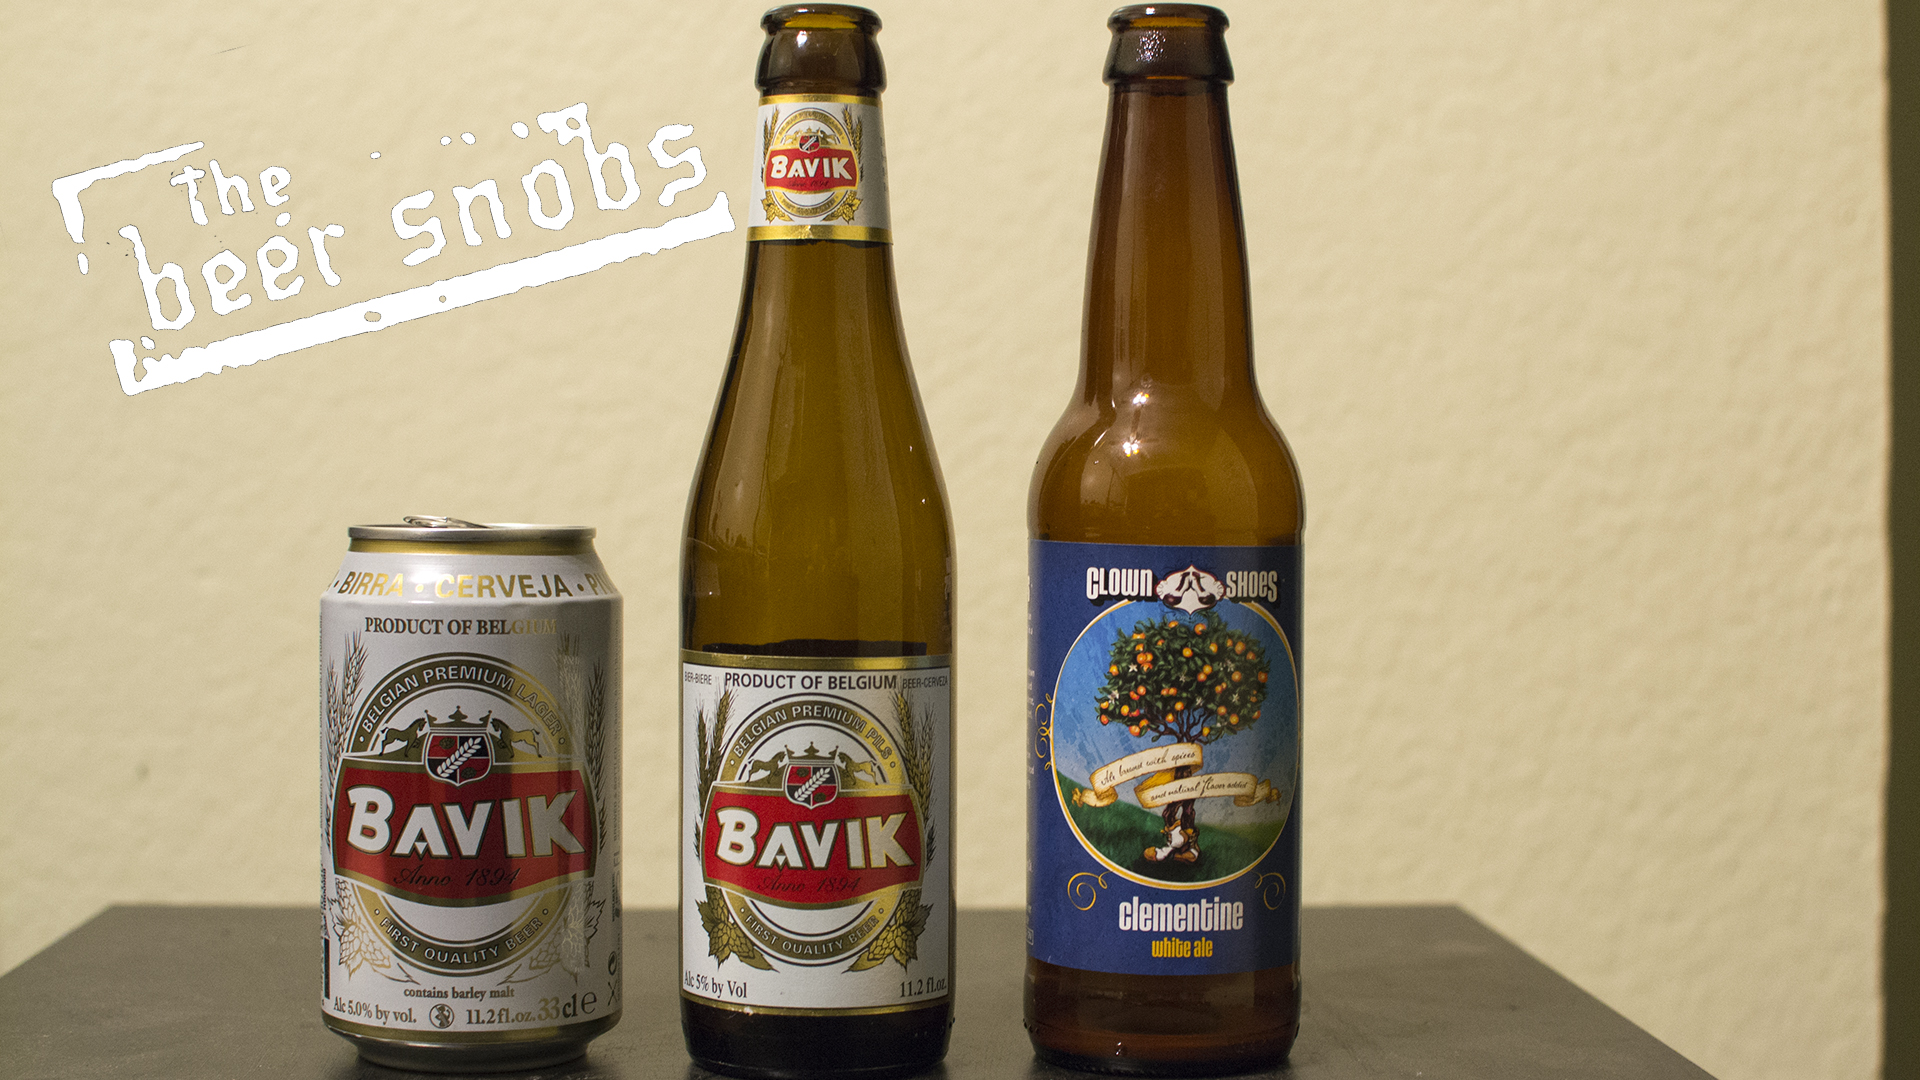 Bavik Premium Pils/Lager and Clown Shoes Clemintime